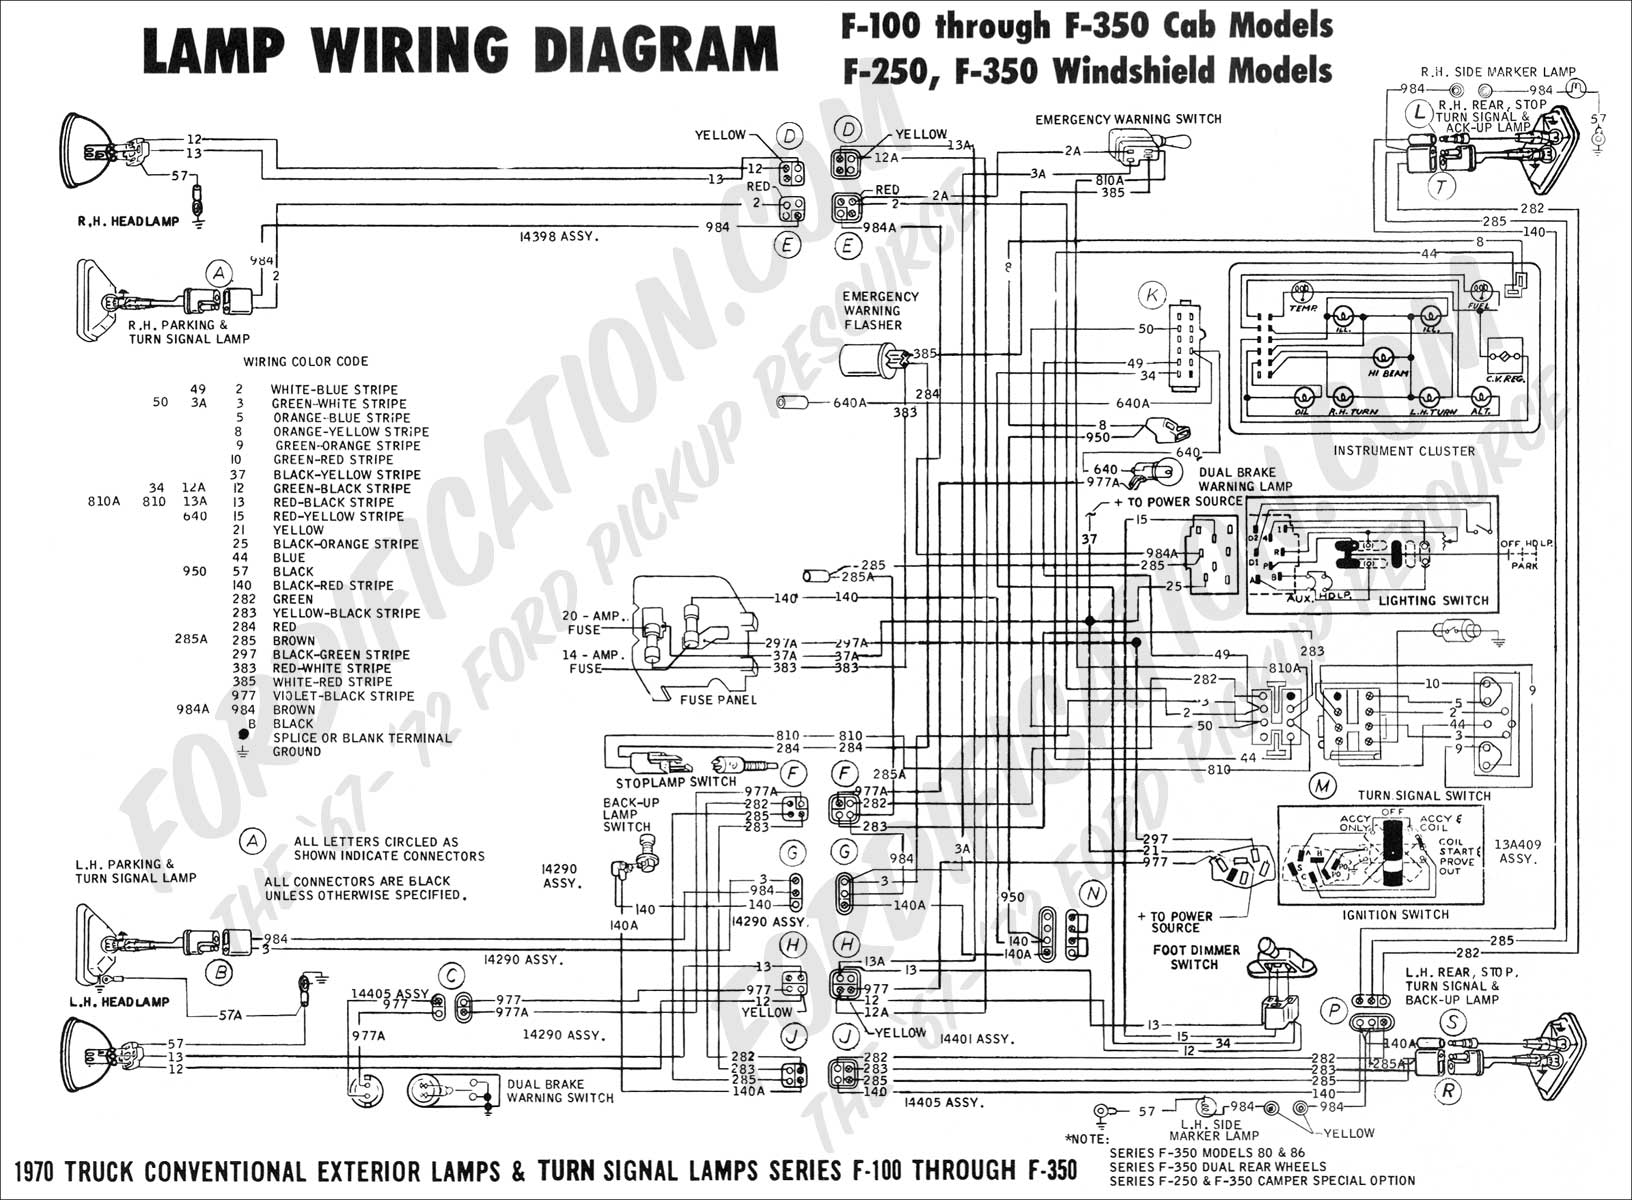 f250 super duty wiring diagram wiring diagram for 2016 ford f250 super duty wiring diagram for 2016 ford f250 wiring diagram